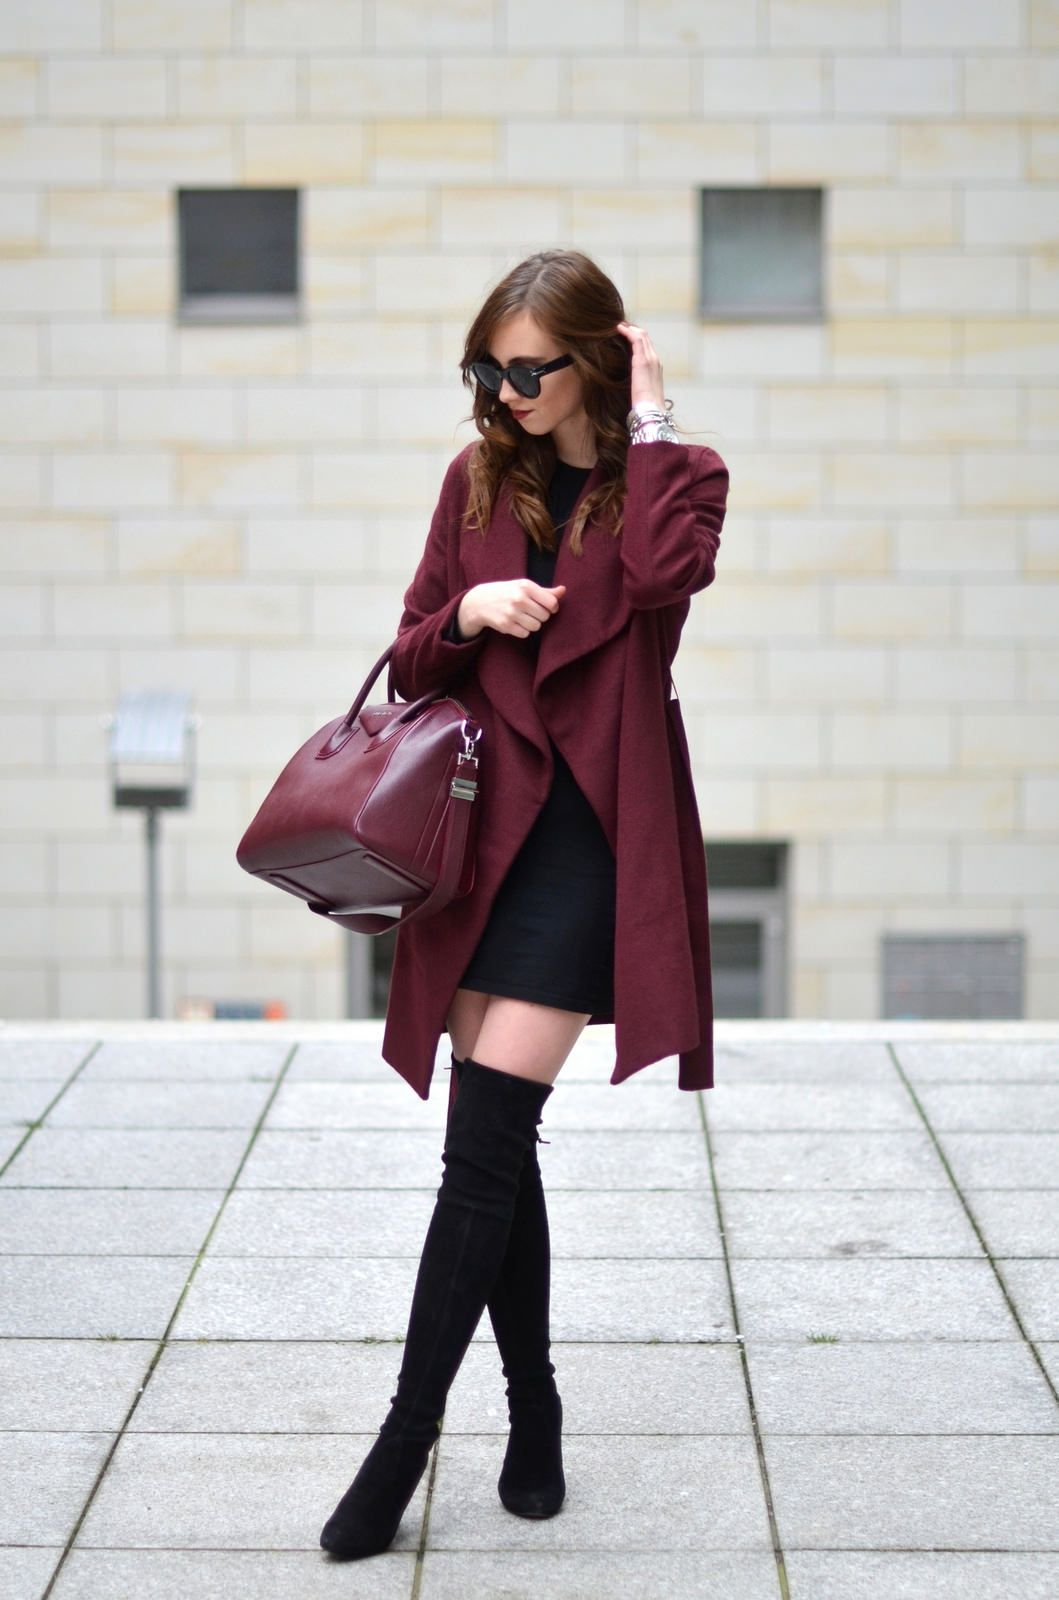 63a453b4ed94 Barbora Ondrackova shows us another way to wear thigh high boots, wearing  this pair with a little black dress and a matching burgundy coat and bag.